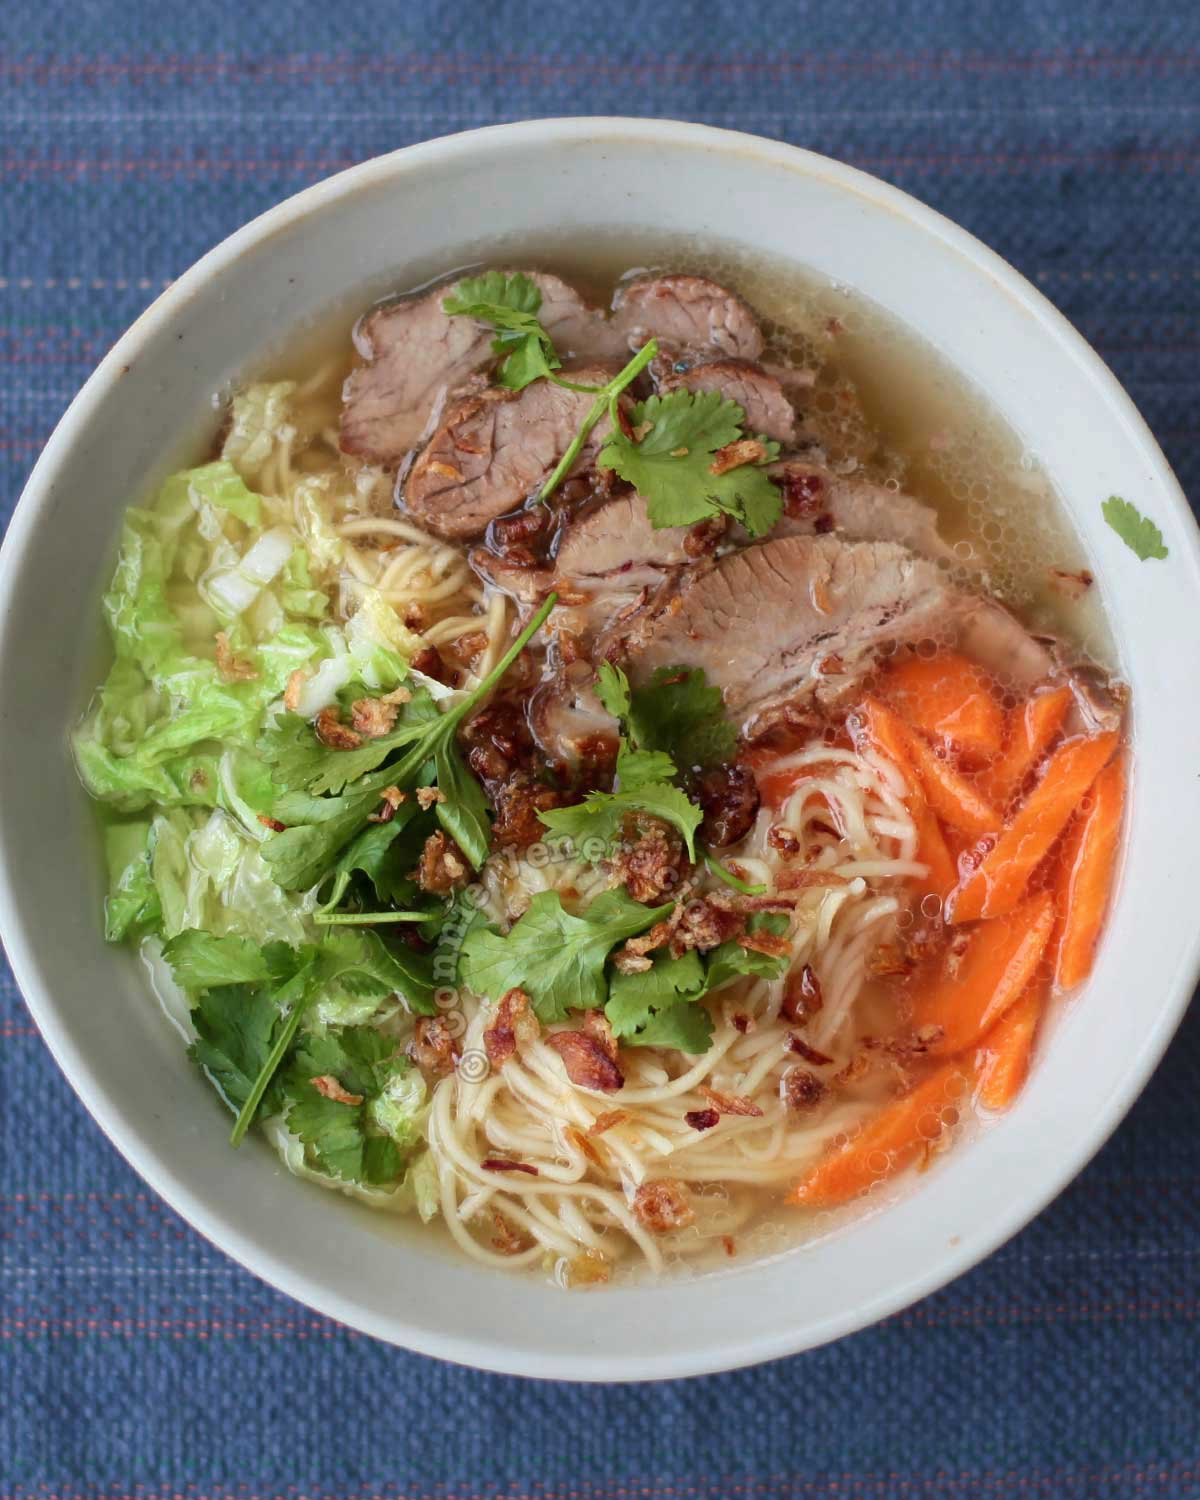 Pork mami, the Filipino version of Chinese noodle soup